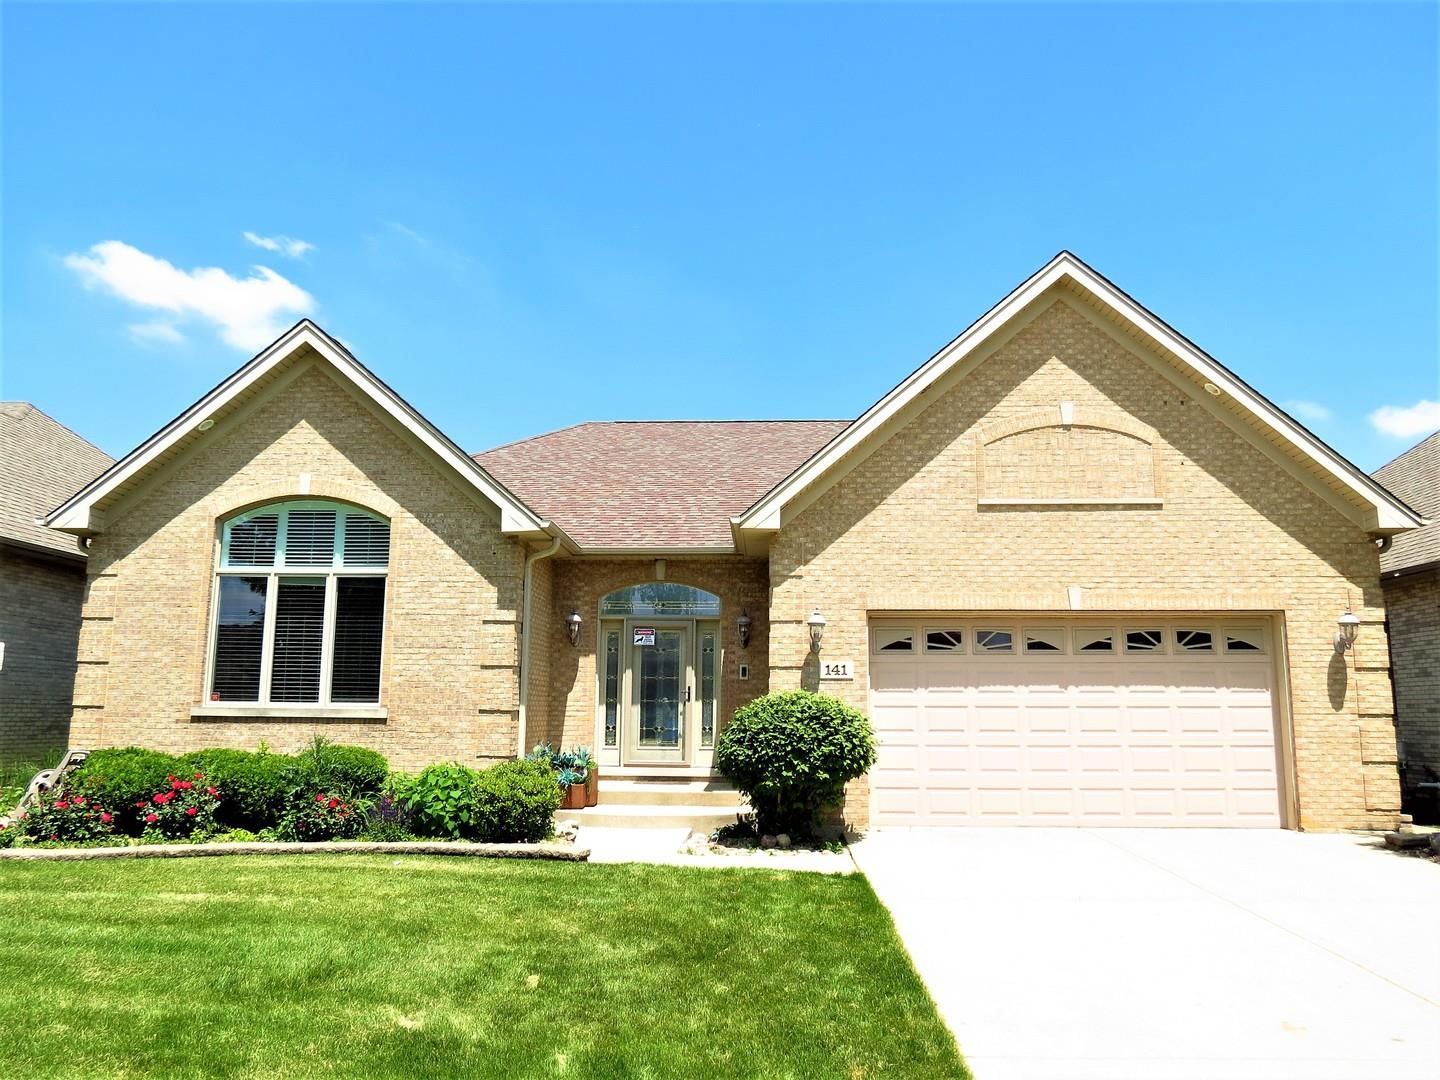 141 Rose Drive, Bloomingdale, IL 60108 - #: 10820478